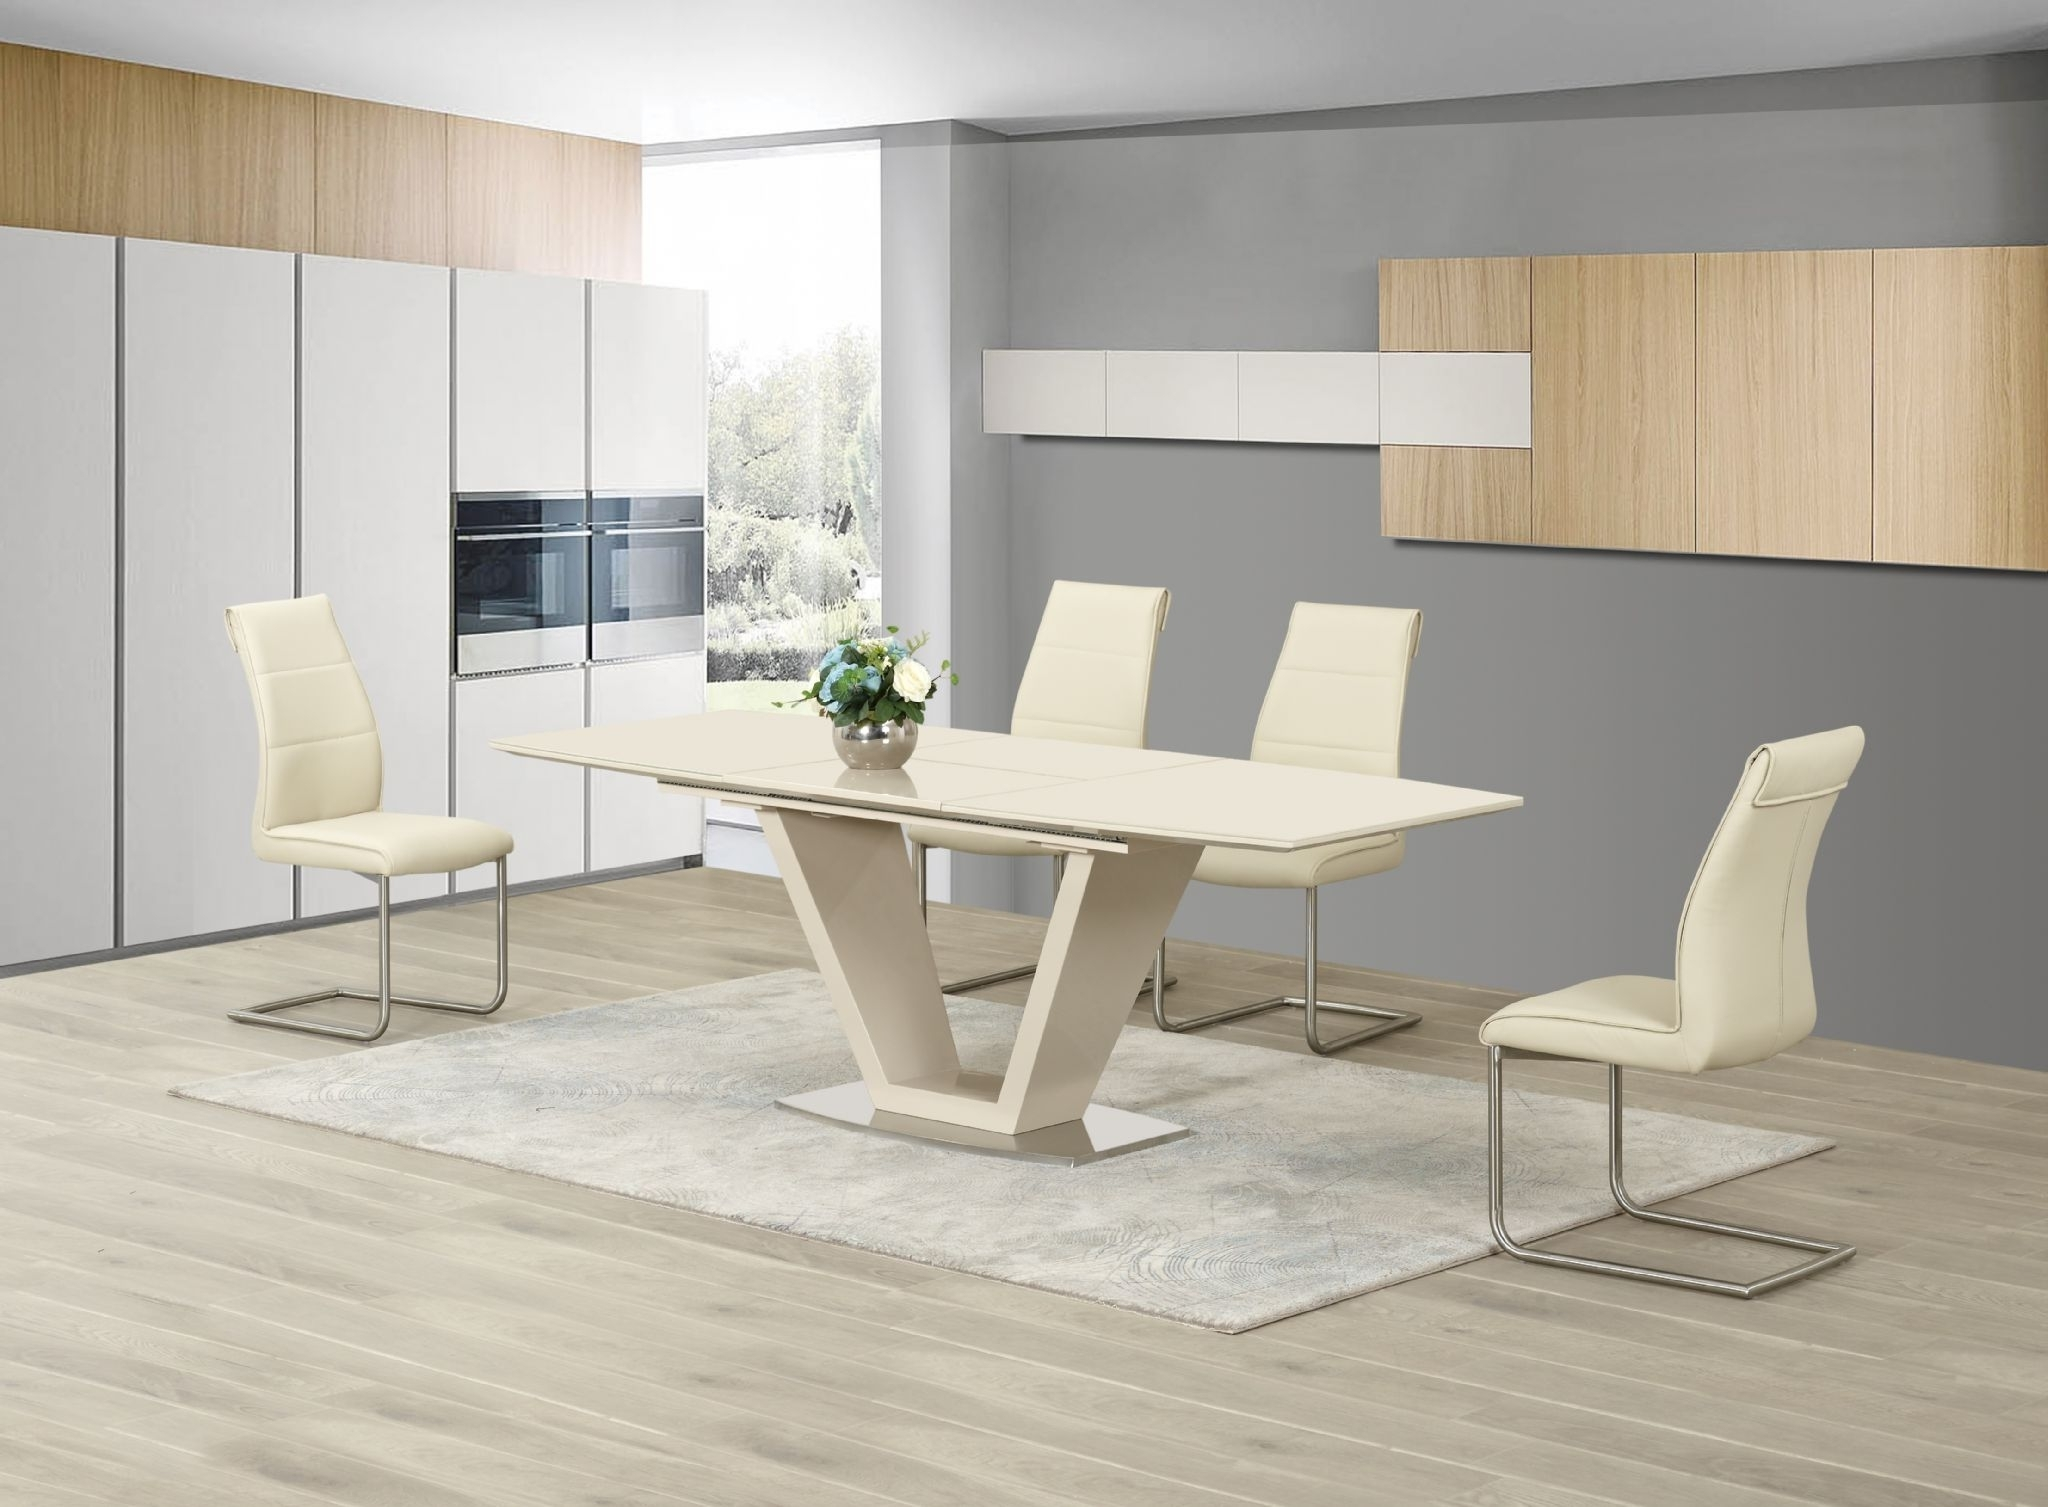 Current Ga Loriga Cream Gloss Glass Designer Dining Table Extending 160/220 Cm  Chairs 2 Colours Intended For Black Glass Dining Tables And 6 Chairs (Gallery 24 of 25)